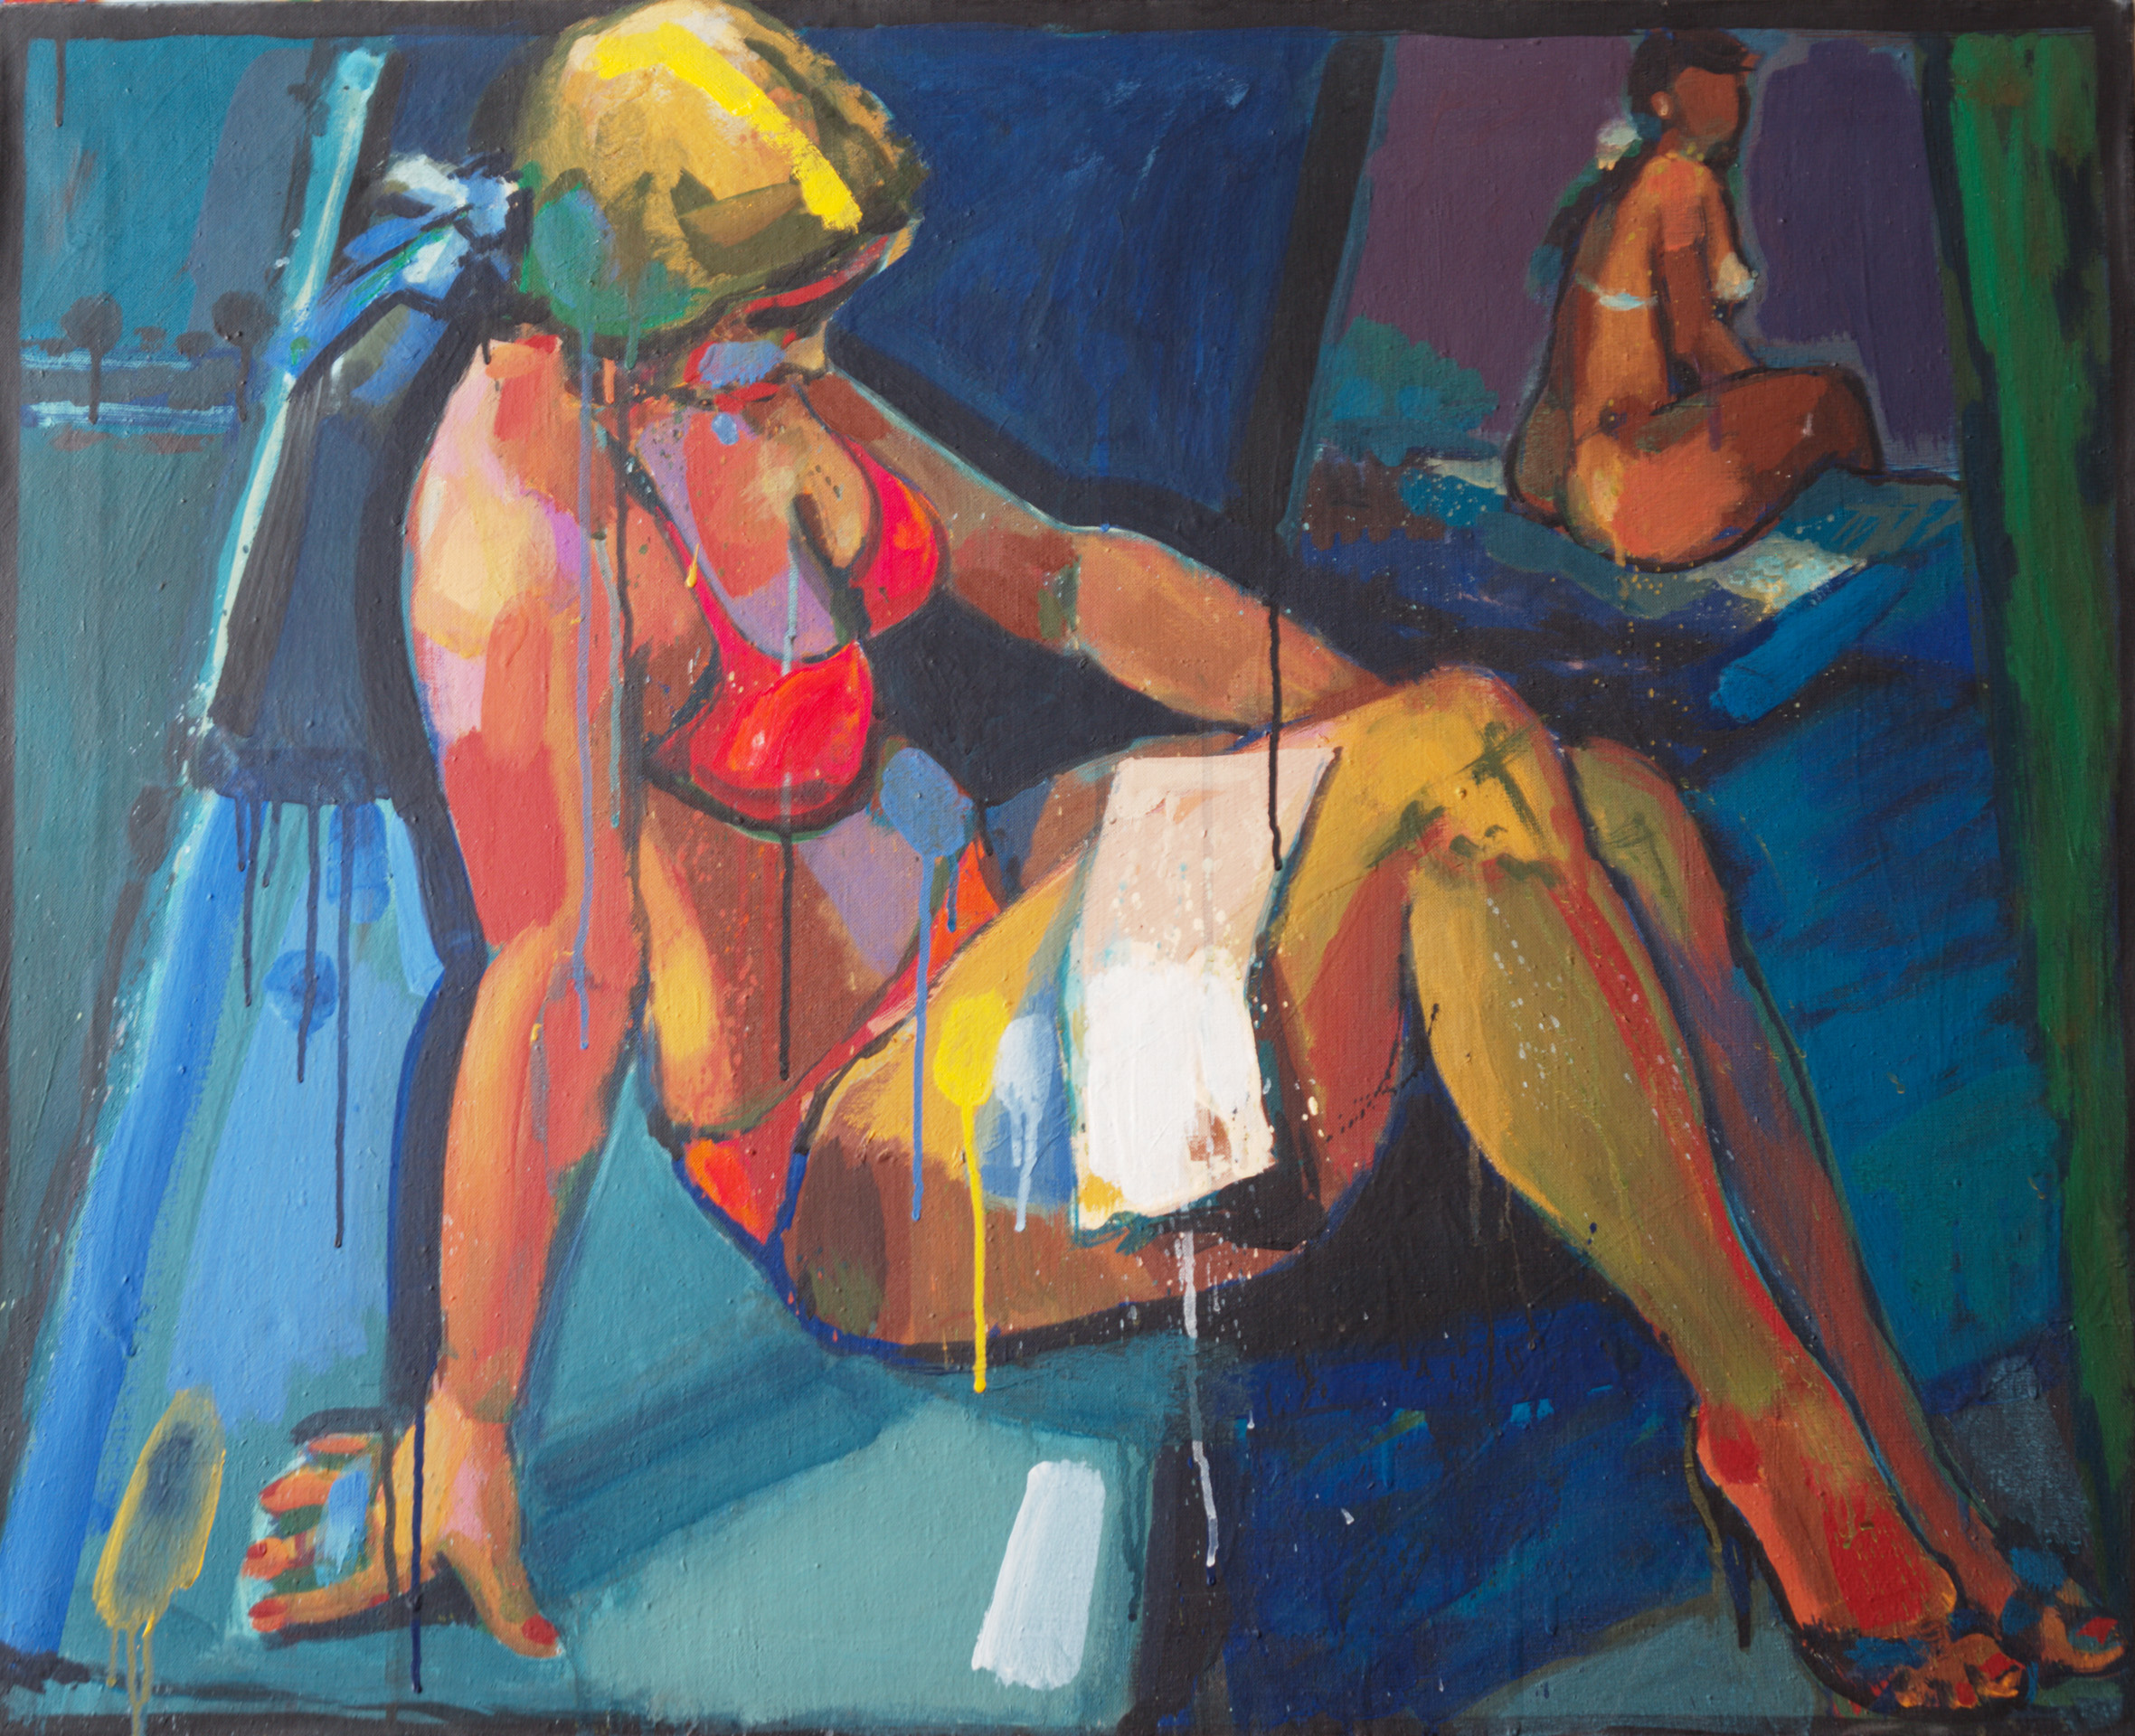 Tatjana  / 1980 / oil on canvas / 80 x 65 cm